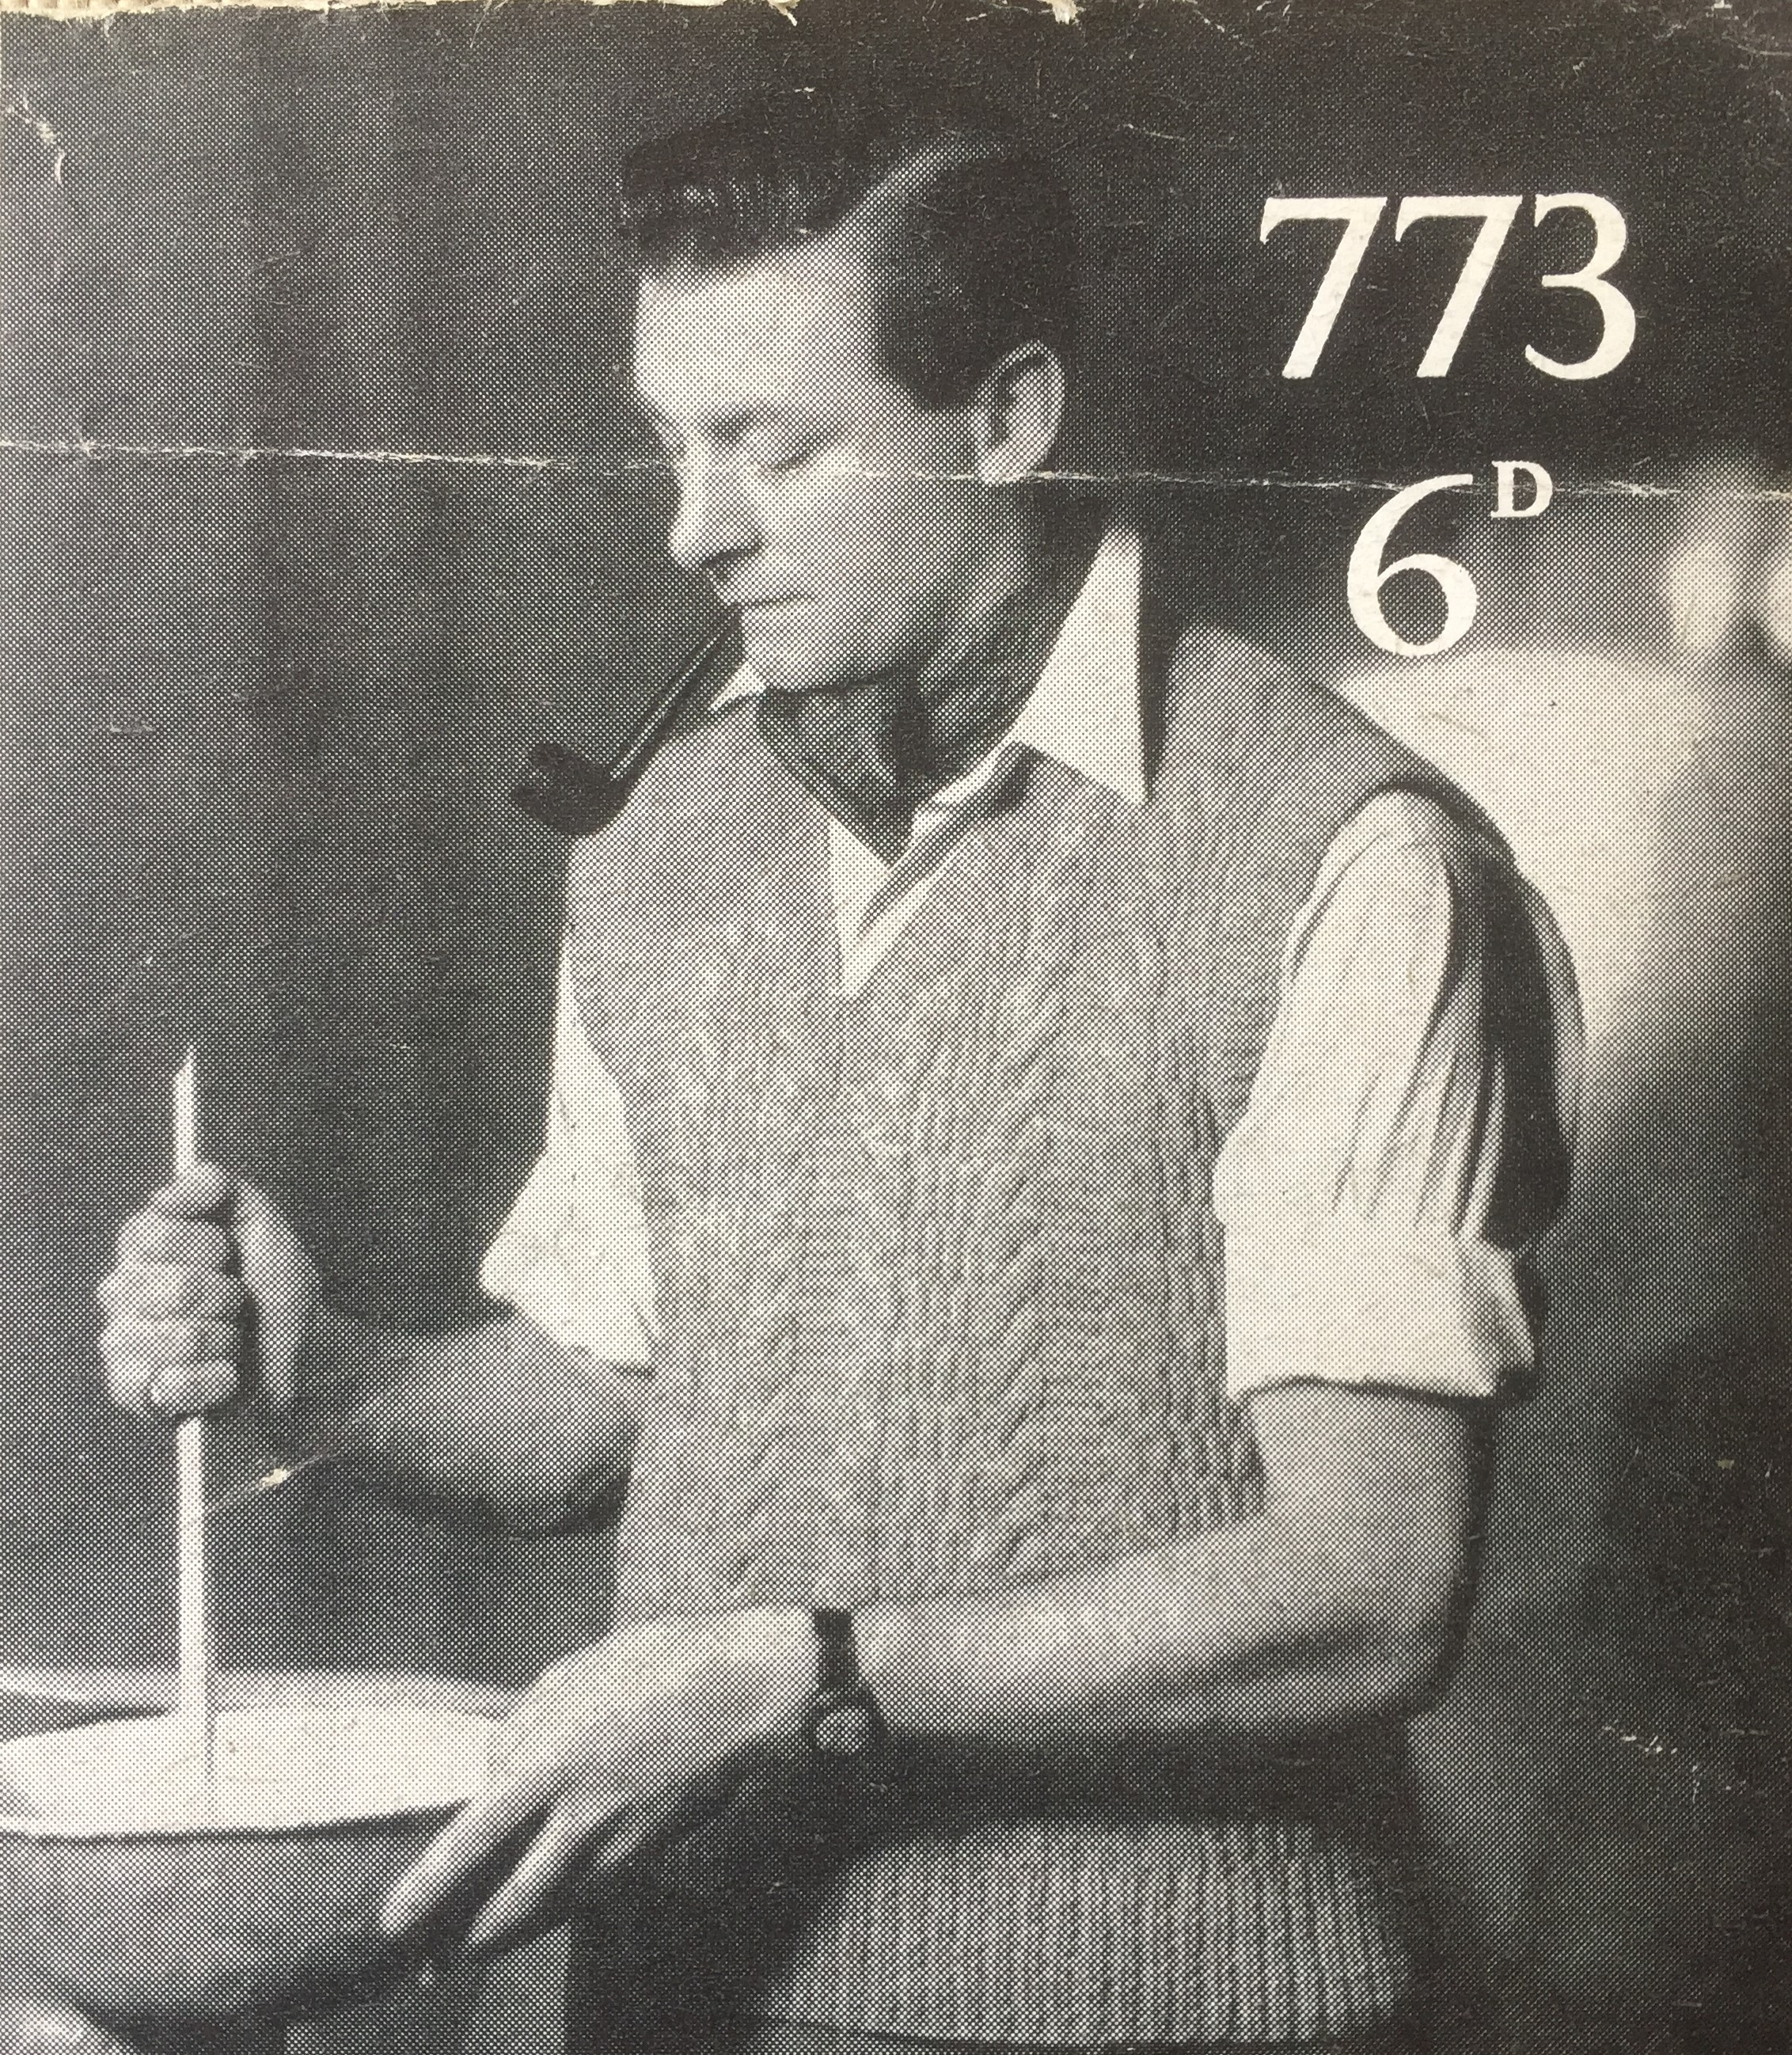 vintage photo of male knitwear model stirring something unidentified in a shed